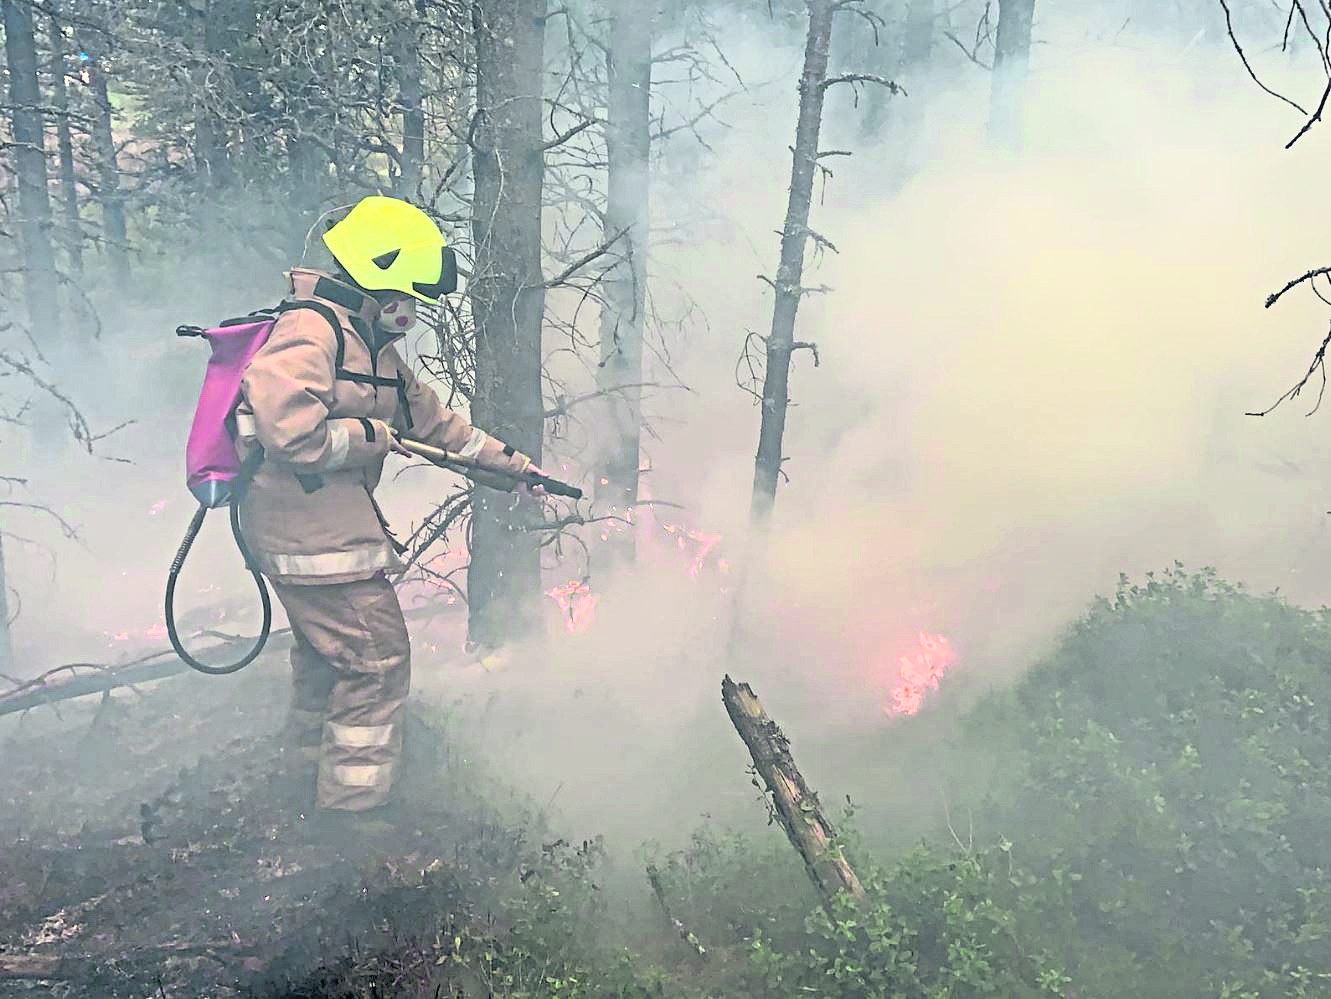 A firefighter battling the flames in Aviemore.